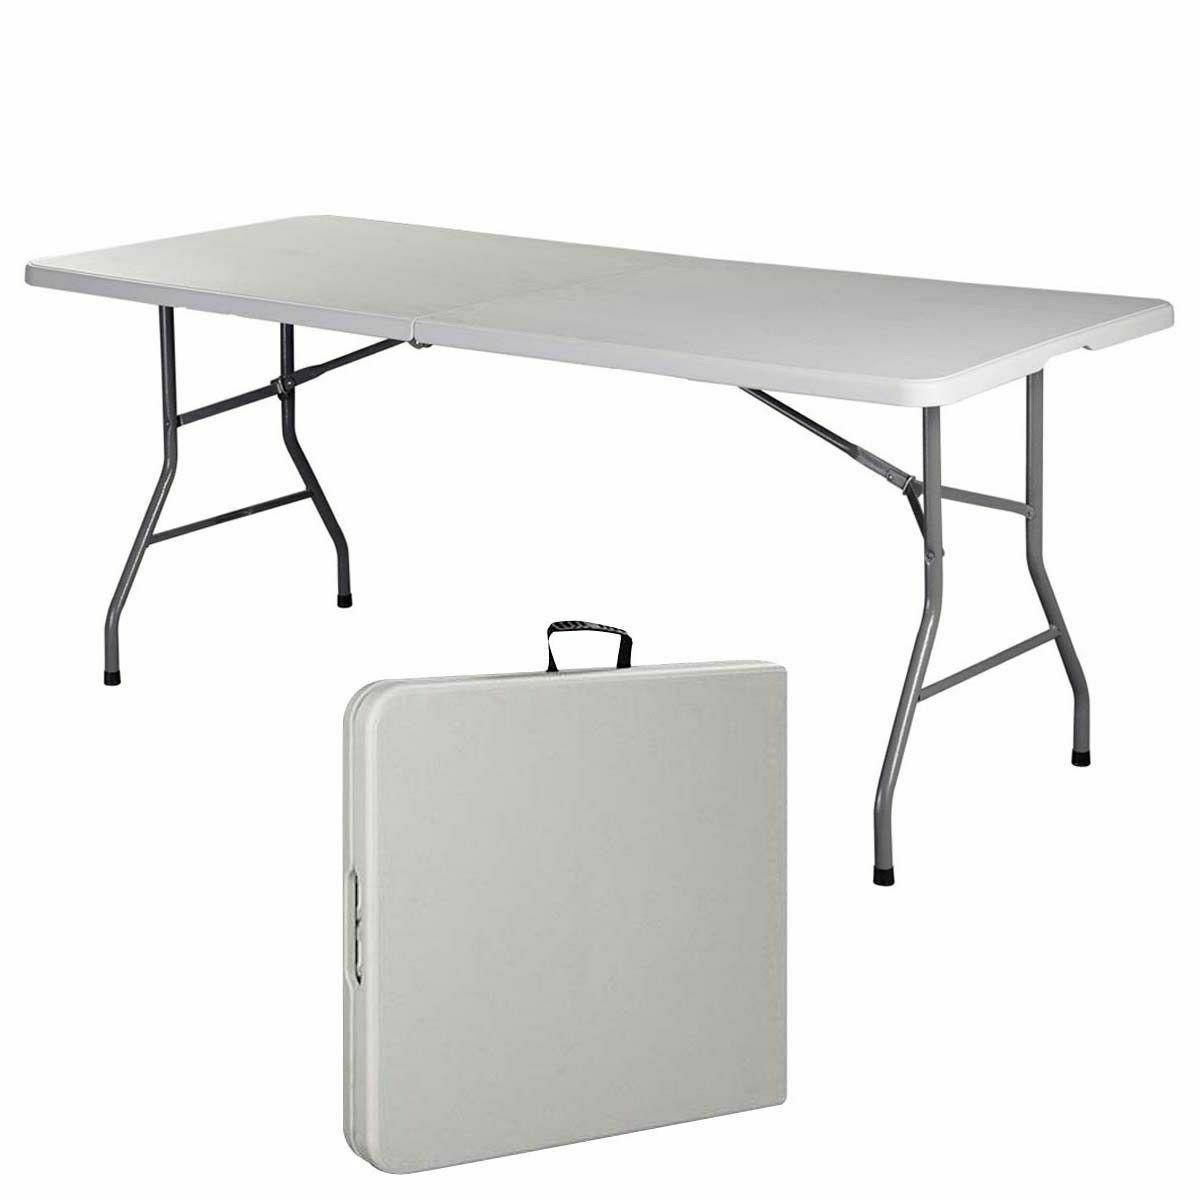 6 folding table portable plastic indoor outdoor